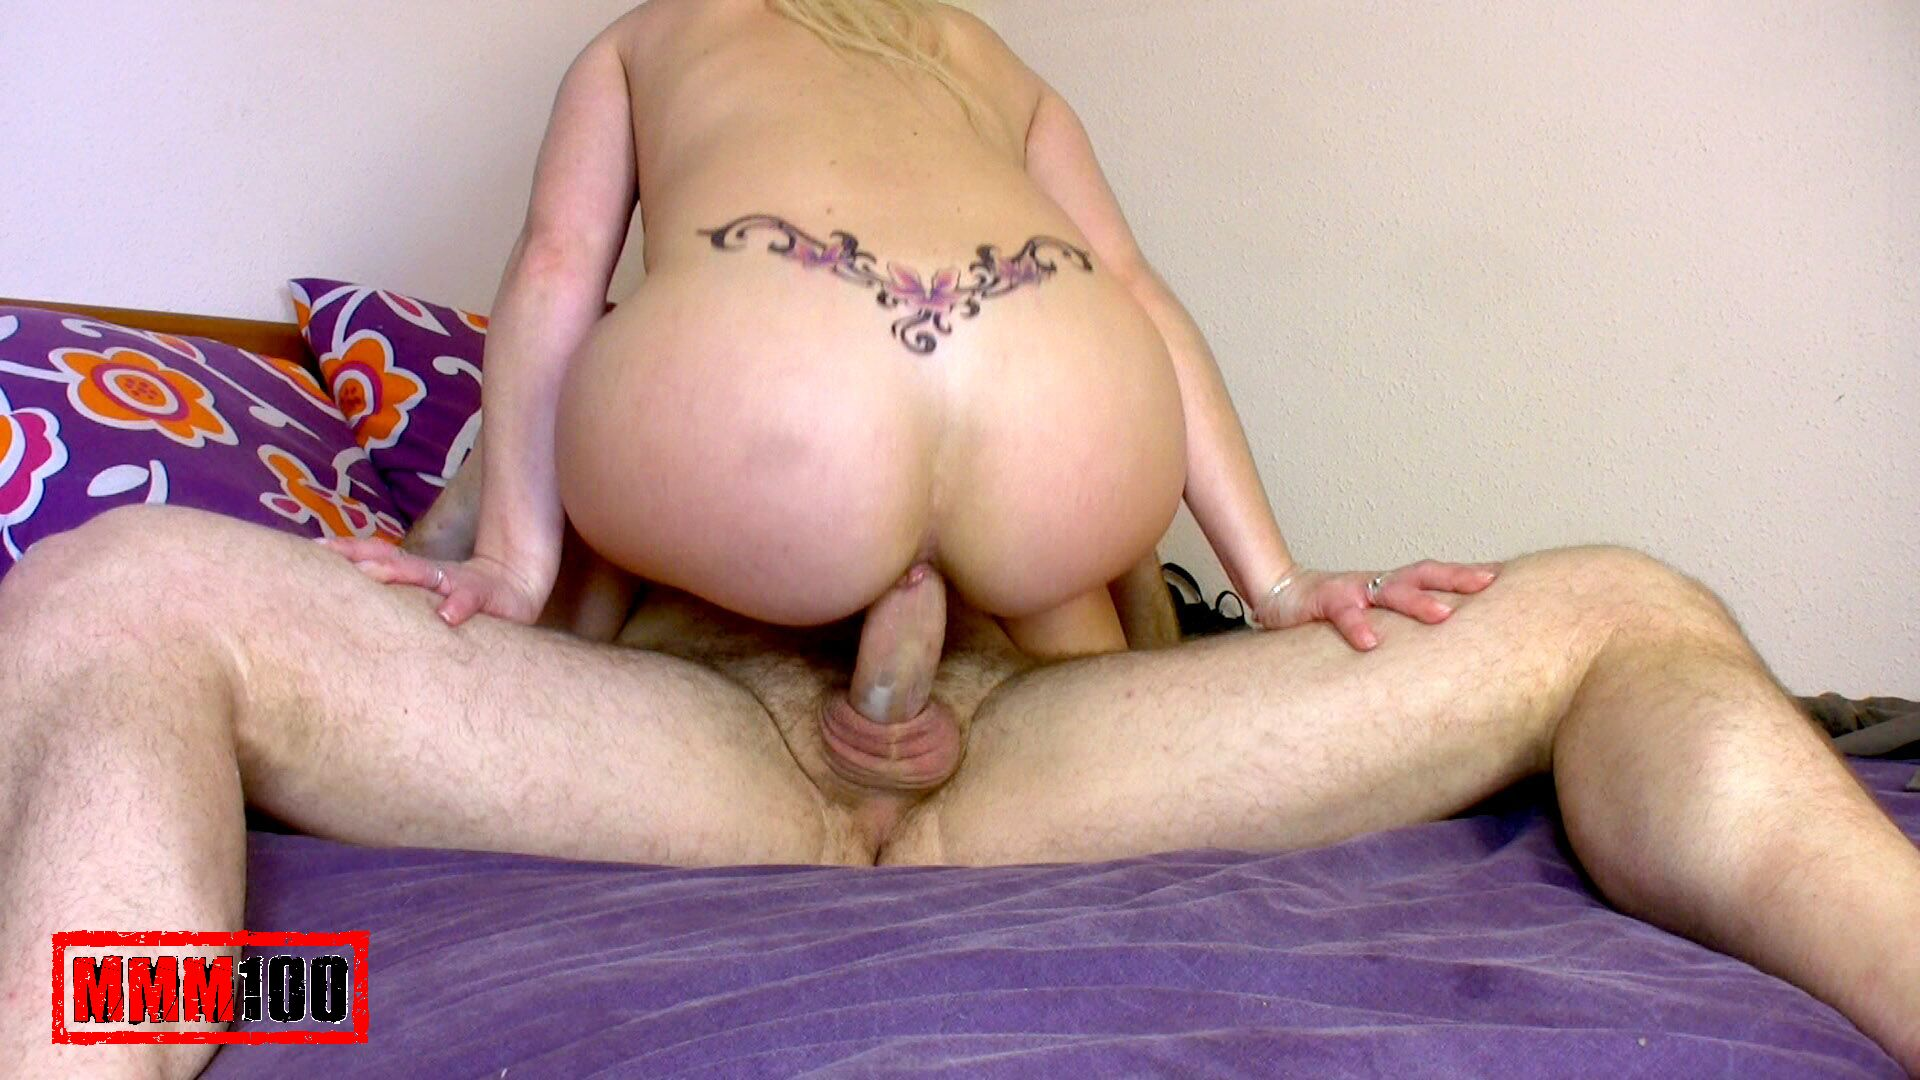 Alexa Diamond & Terry in A Cock In The Ass For This 40 Slut - MMM100